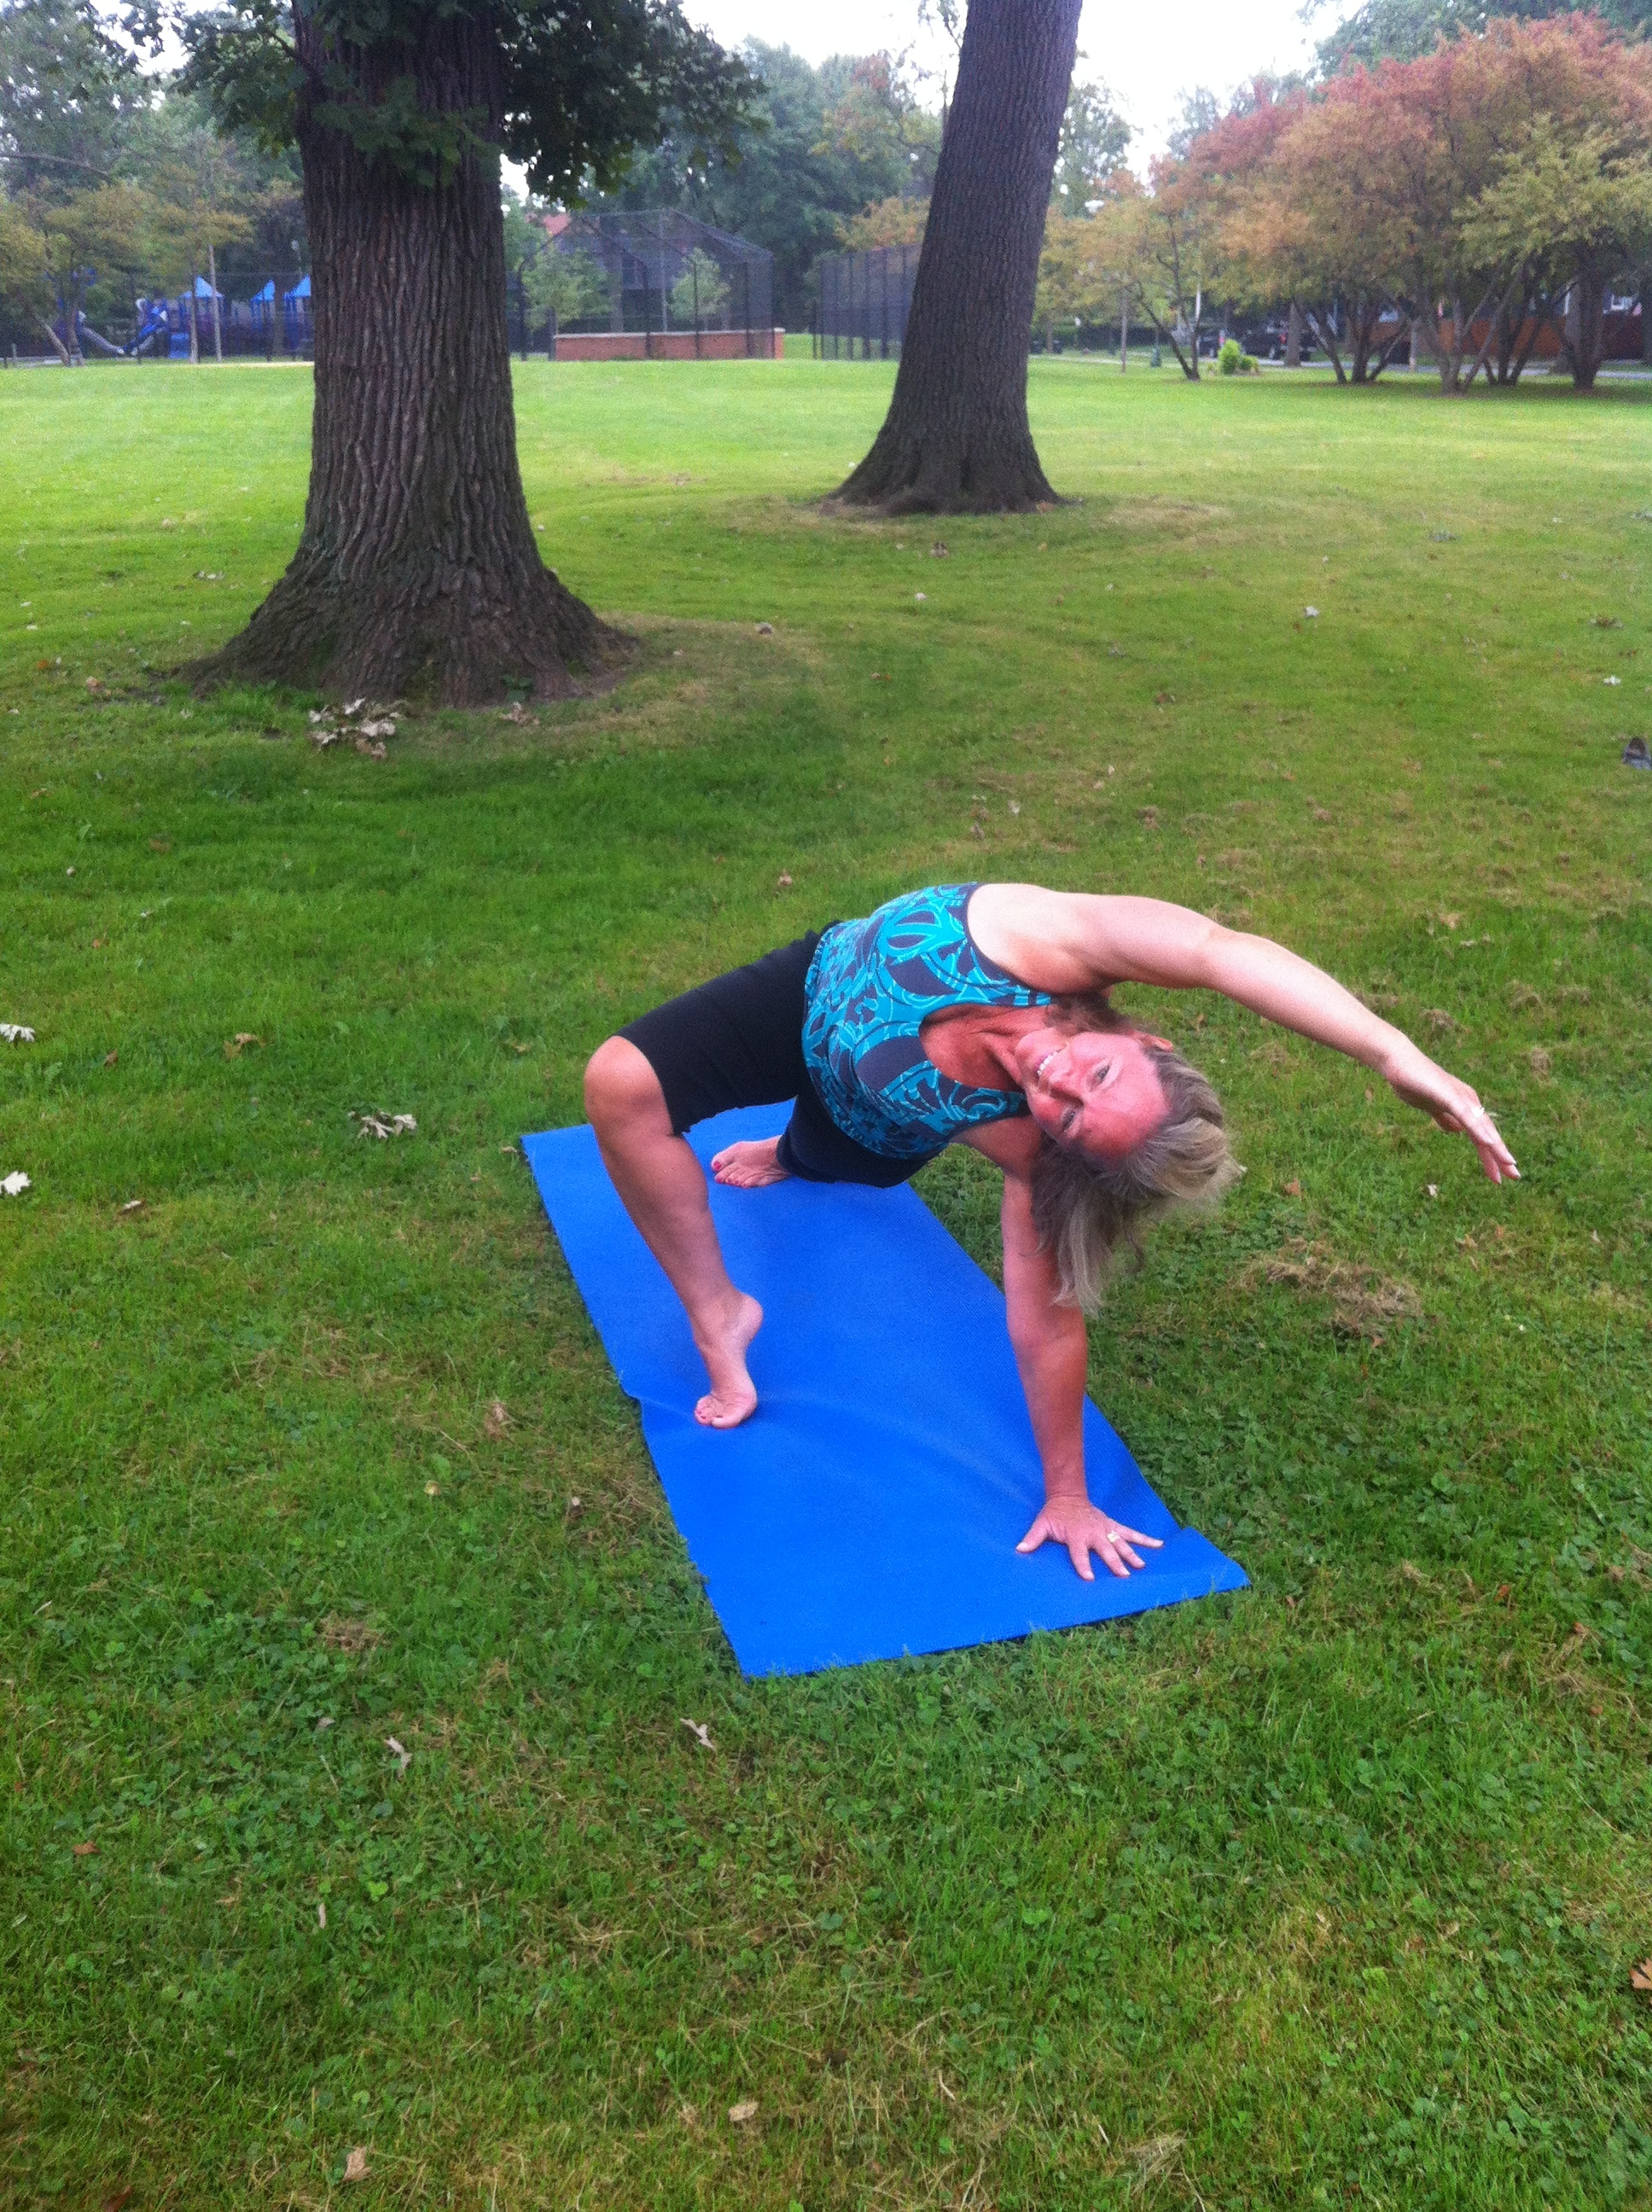 Colleen Patton - Occupational Therapist & Yoga InstructorColleen teaches Hatha Yoga on Thursdays at 4:30pm